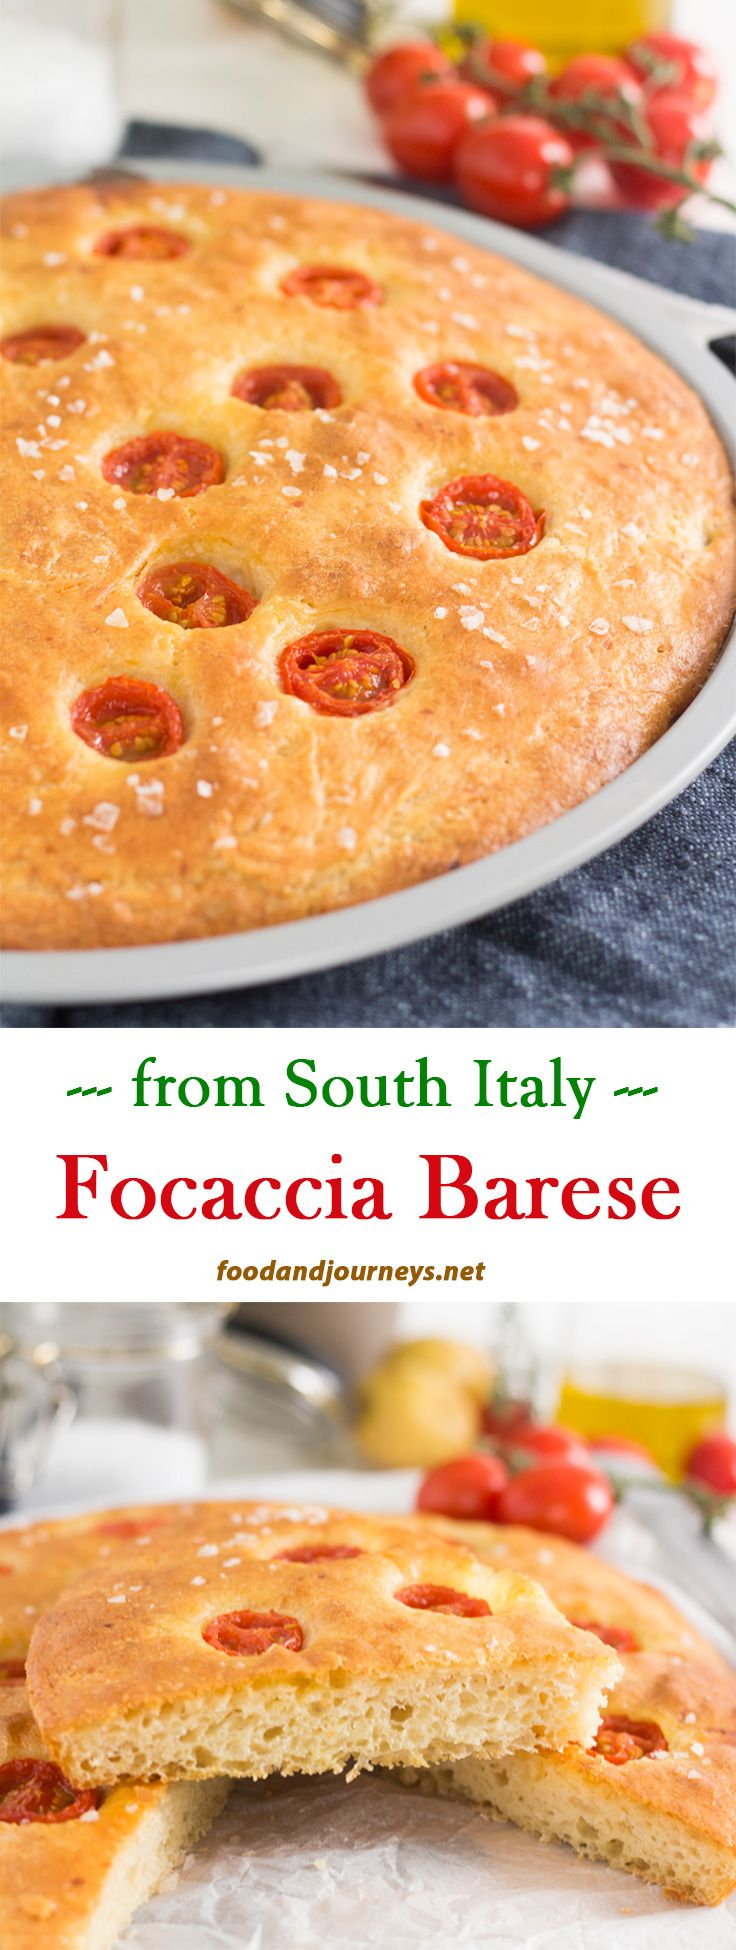 Italian | Bread | Cherry Tomatoes | Barese. This traditional focaccia from the South of Italy contains semolina and mashed potato.  The result is a golden, crunchy bread that tastes like pizza.  You don't need any other appetizer once you have this on the table!  #italianrecipes #bread #focaccia #appetizer